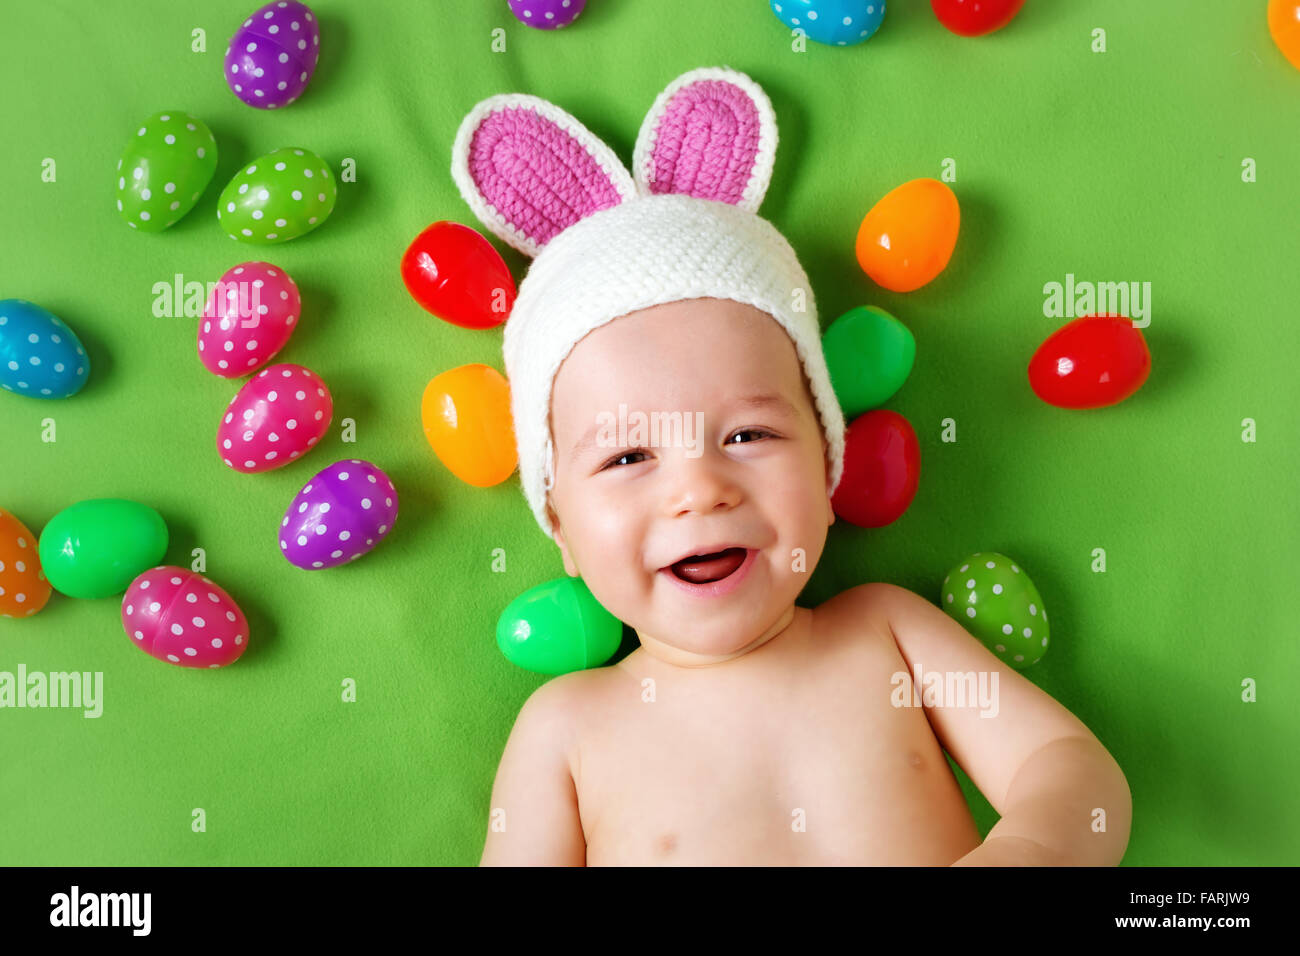 Baby Boy in bunny hat lying on blanket vert avec des oeufs de pâques Photo Stock